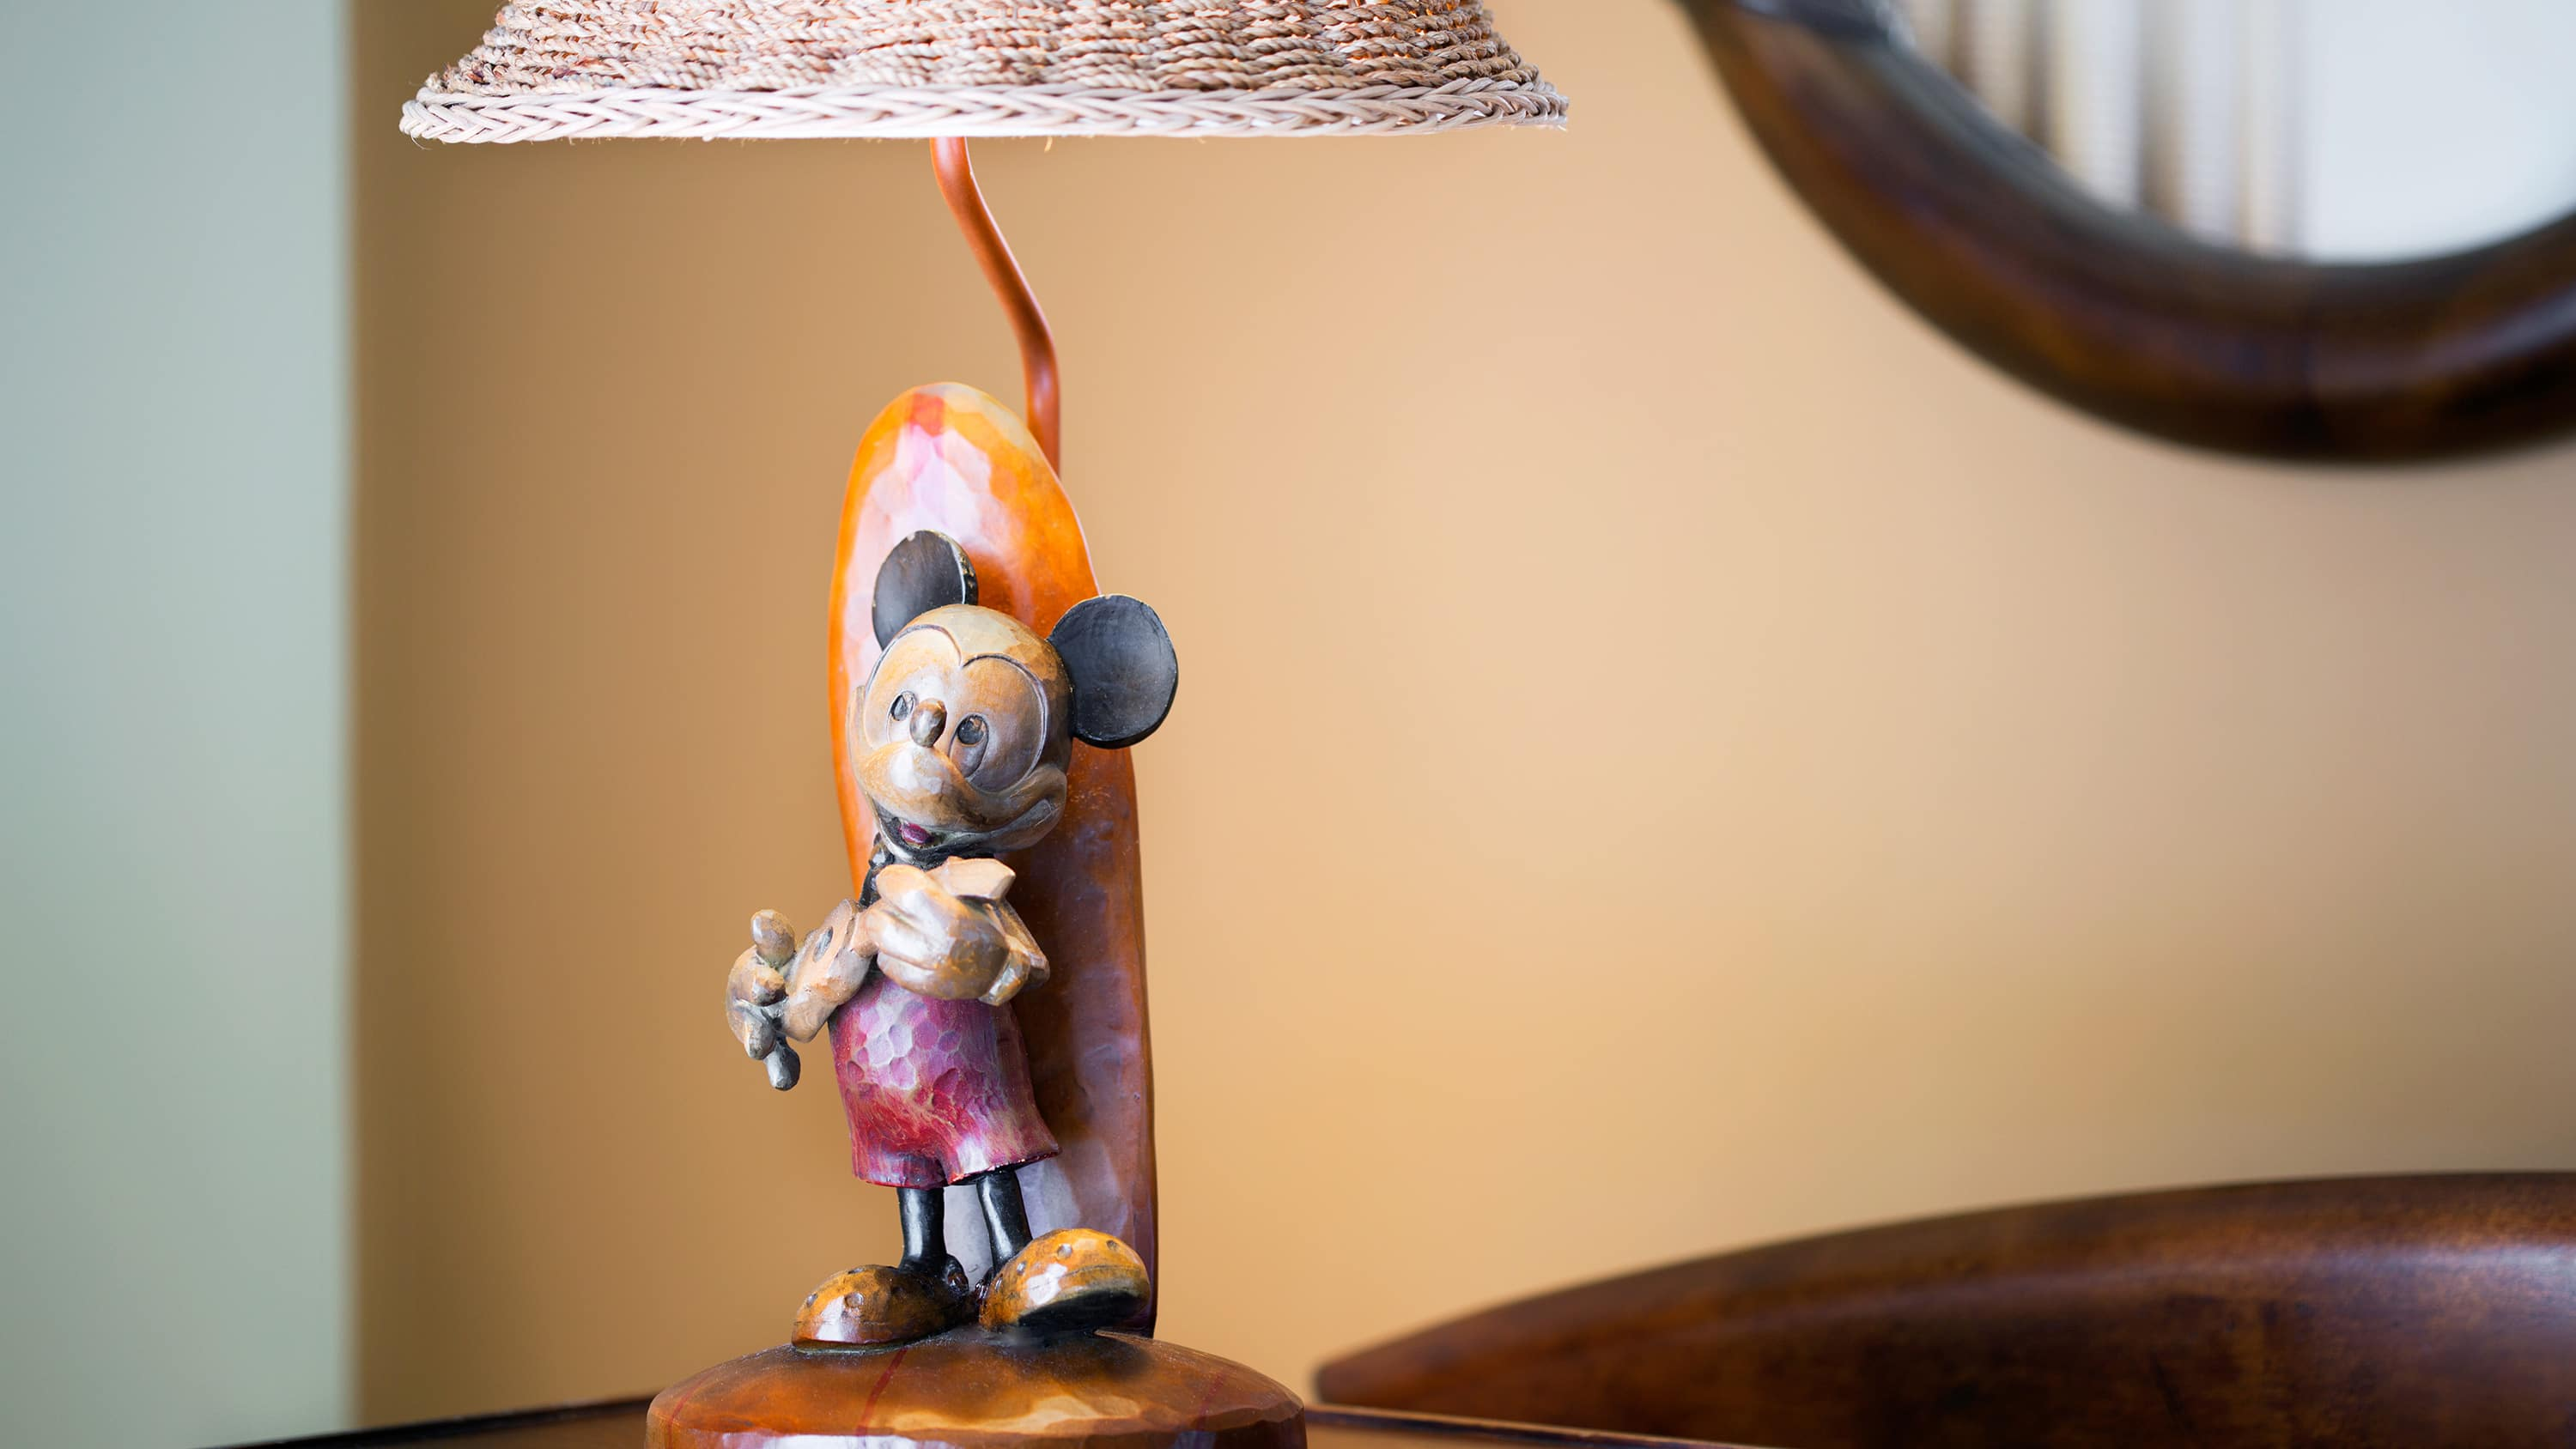 A wooden lamp carved to resemble Mickey Mouse with a ukulele near a surfboard